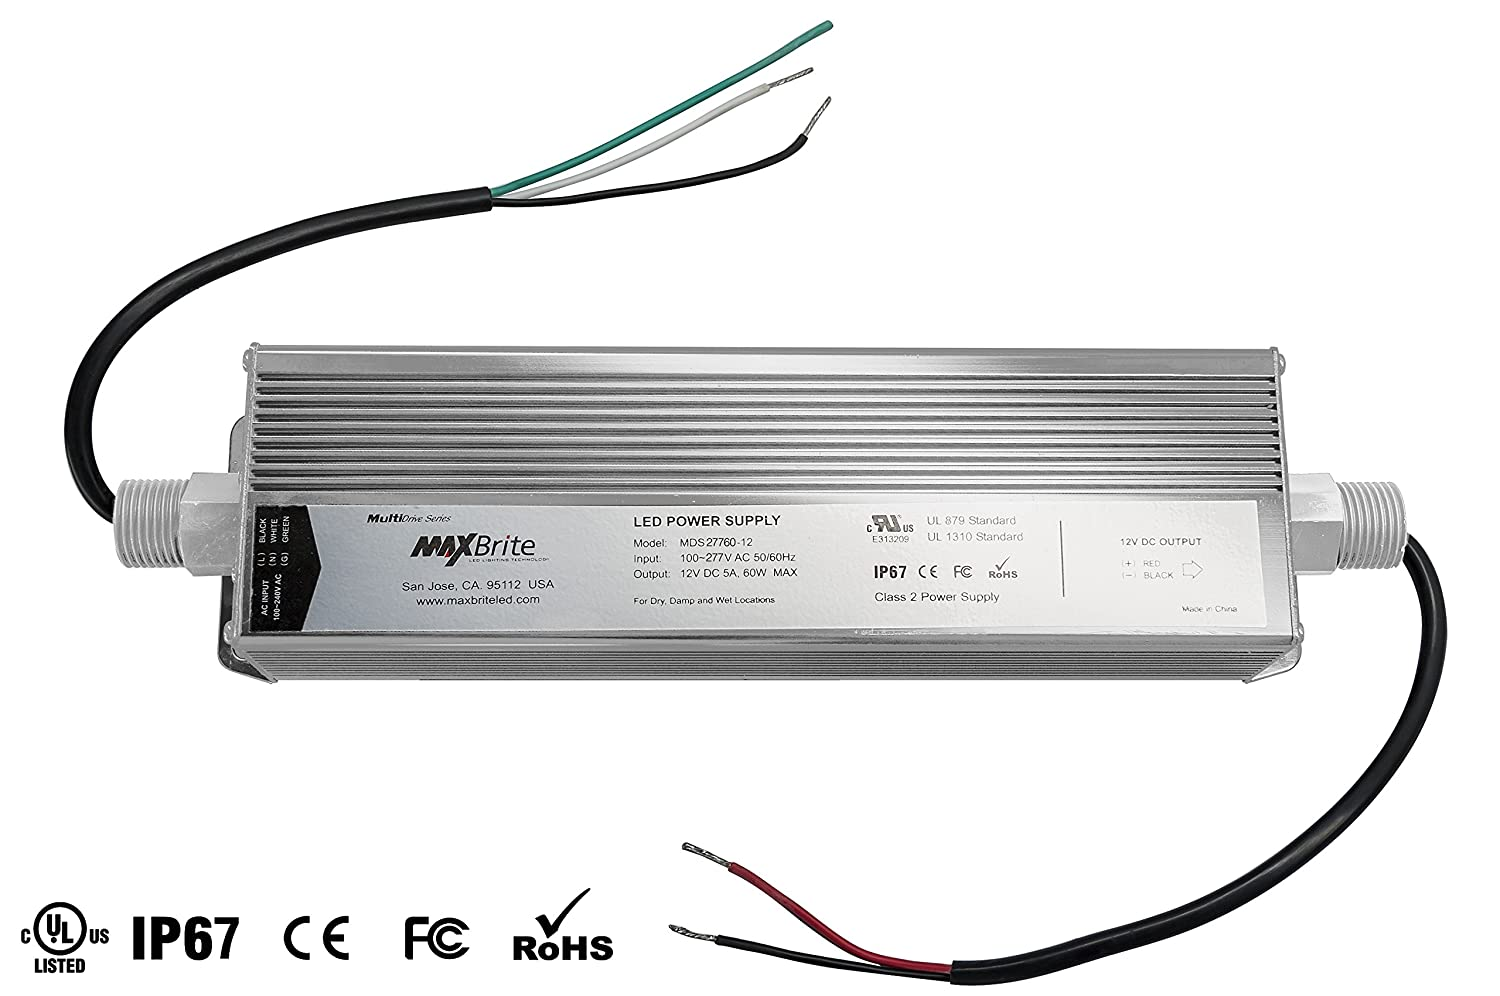 60w Led Power Supply 12v Dc Output 100 277v Ac Input Ip67 Wiring 12 Volt To Waterproof Ul Cul Certified Ce Rohs Class 2